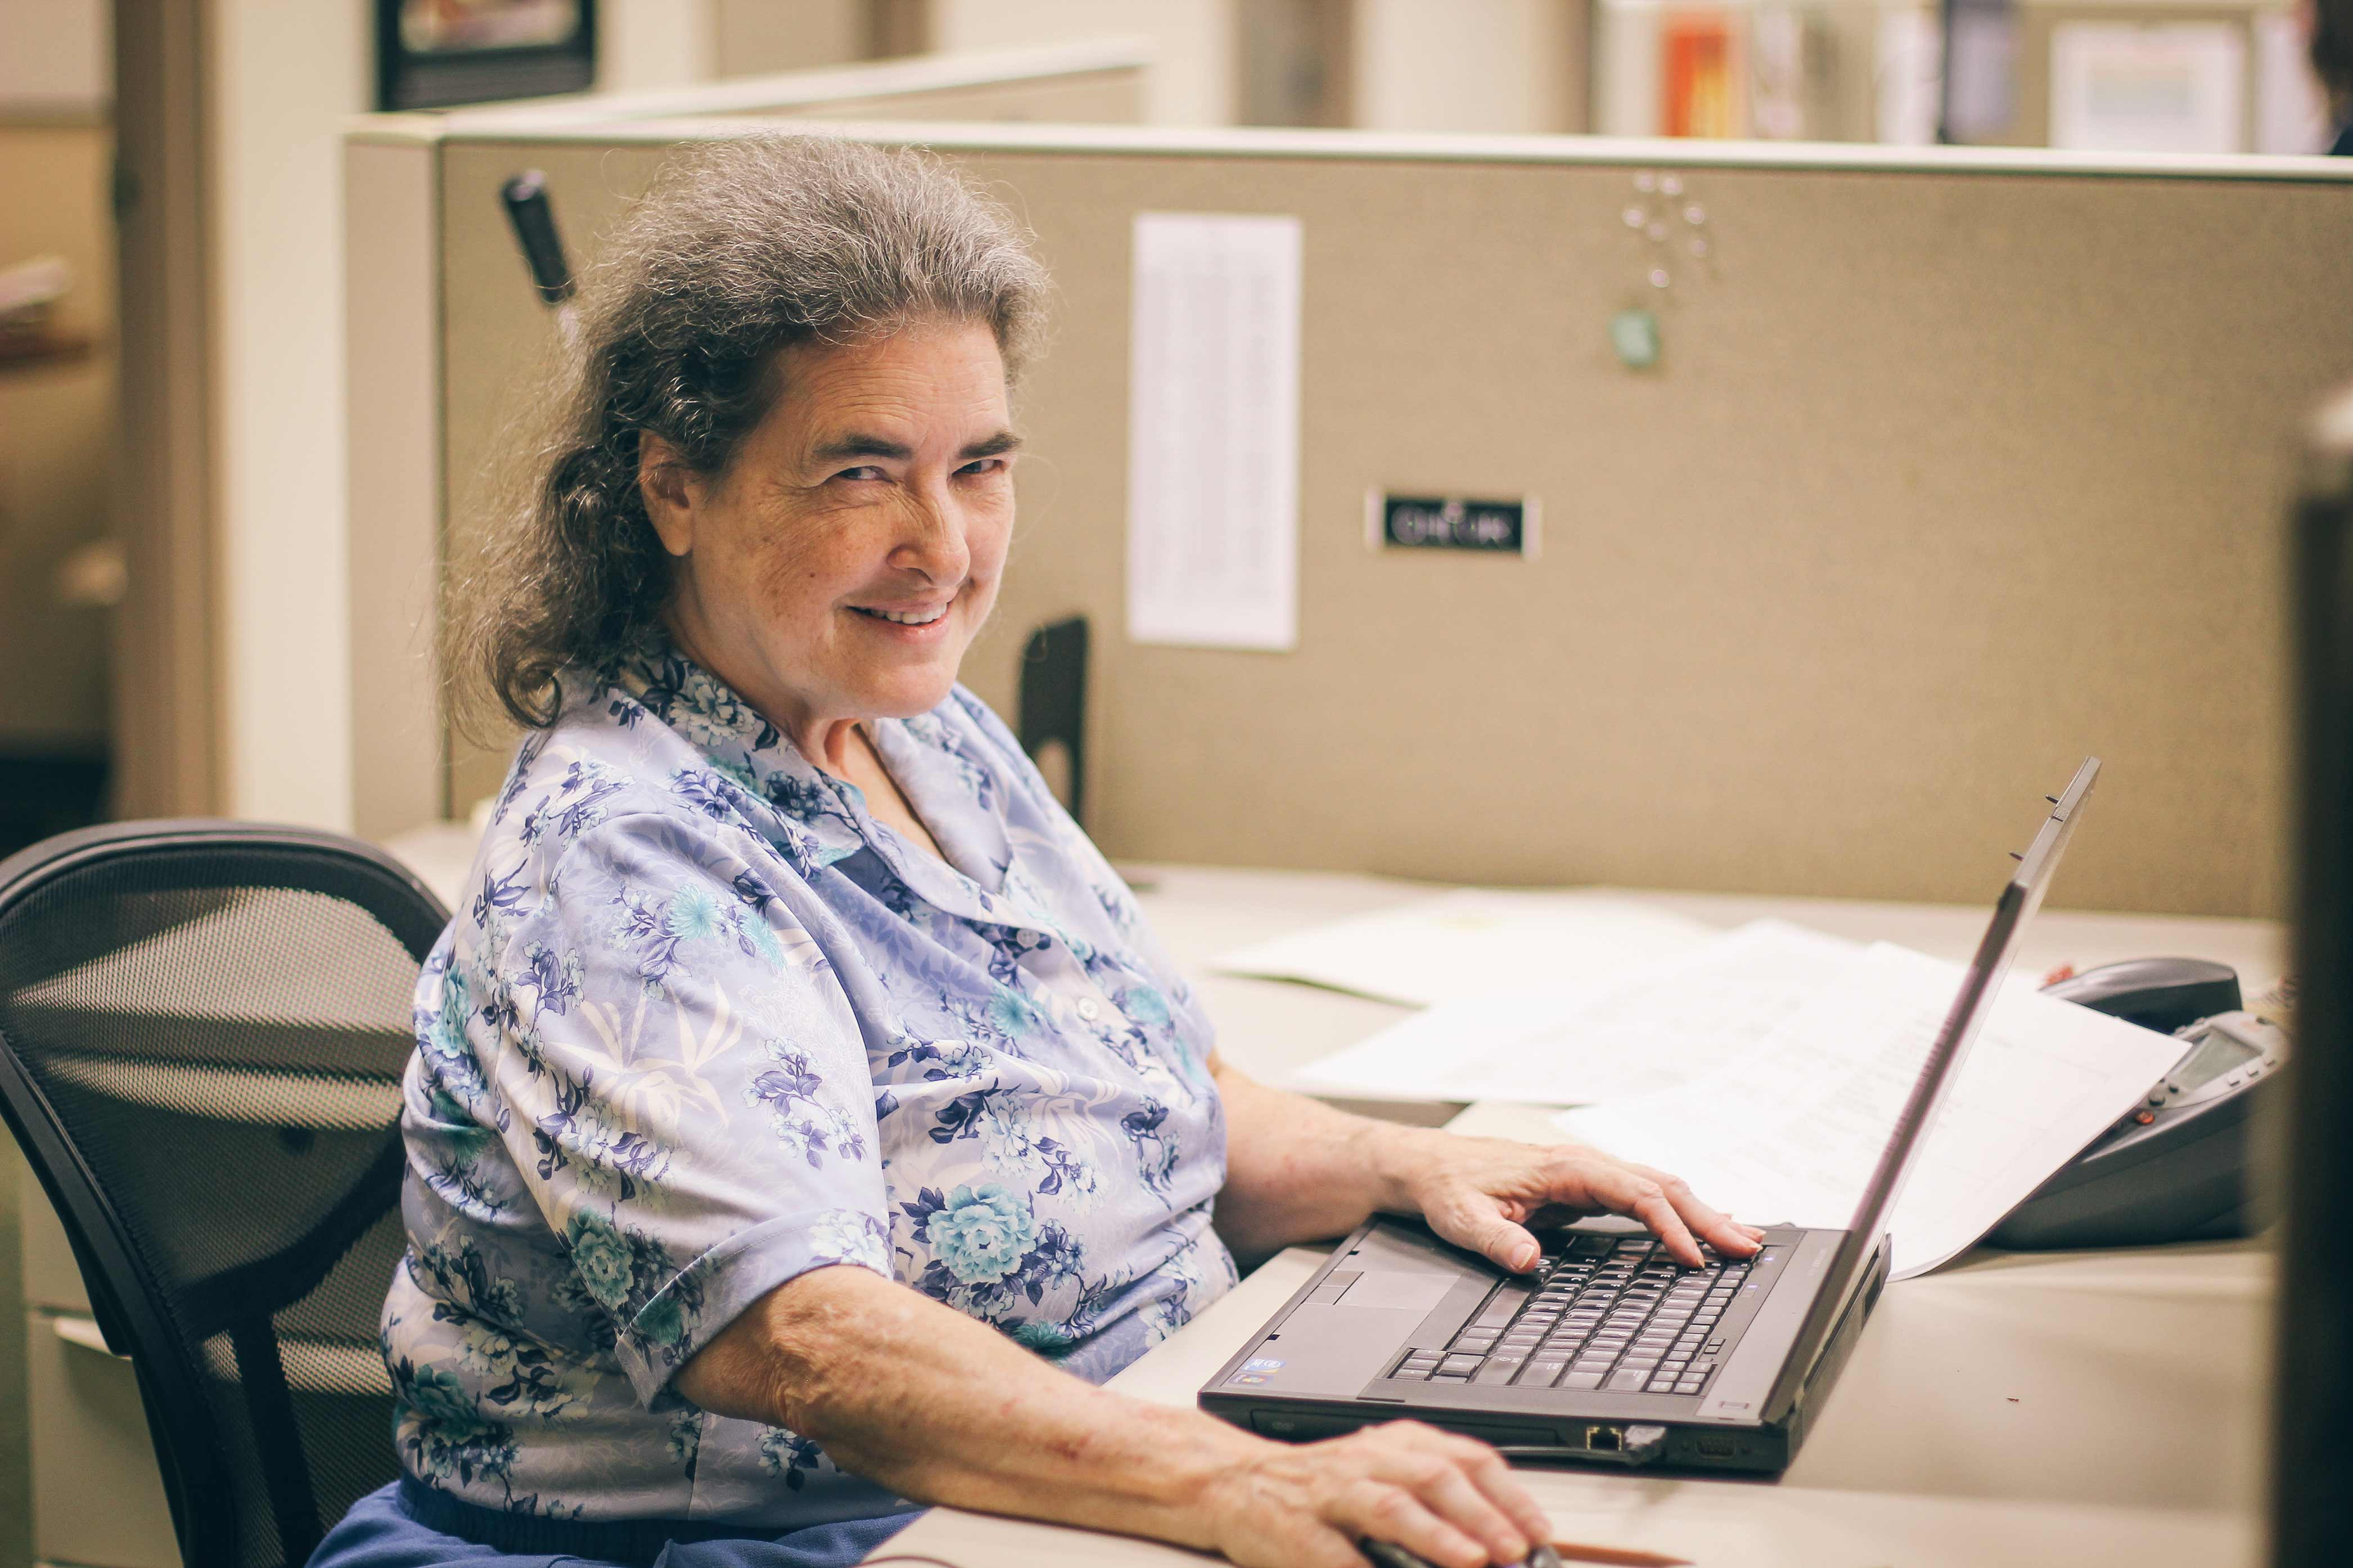 Cathy works hard as a volunteer to make an impact through safe water at Water Mission's headquarters in North Charleston, SC.